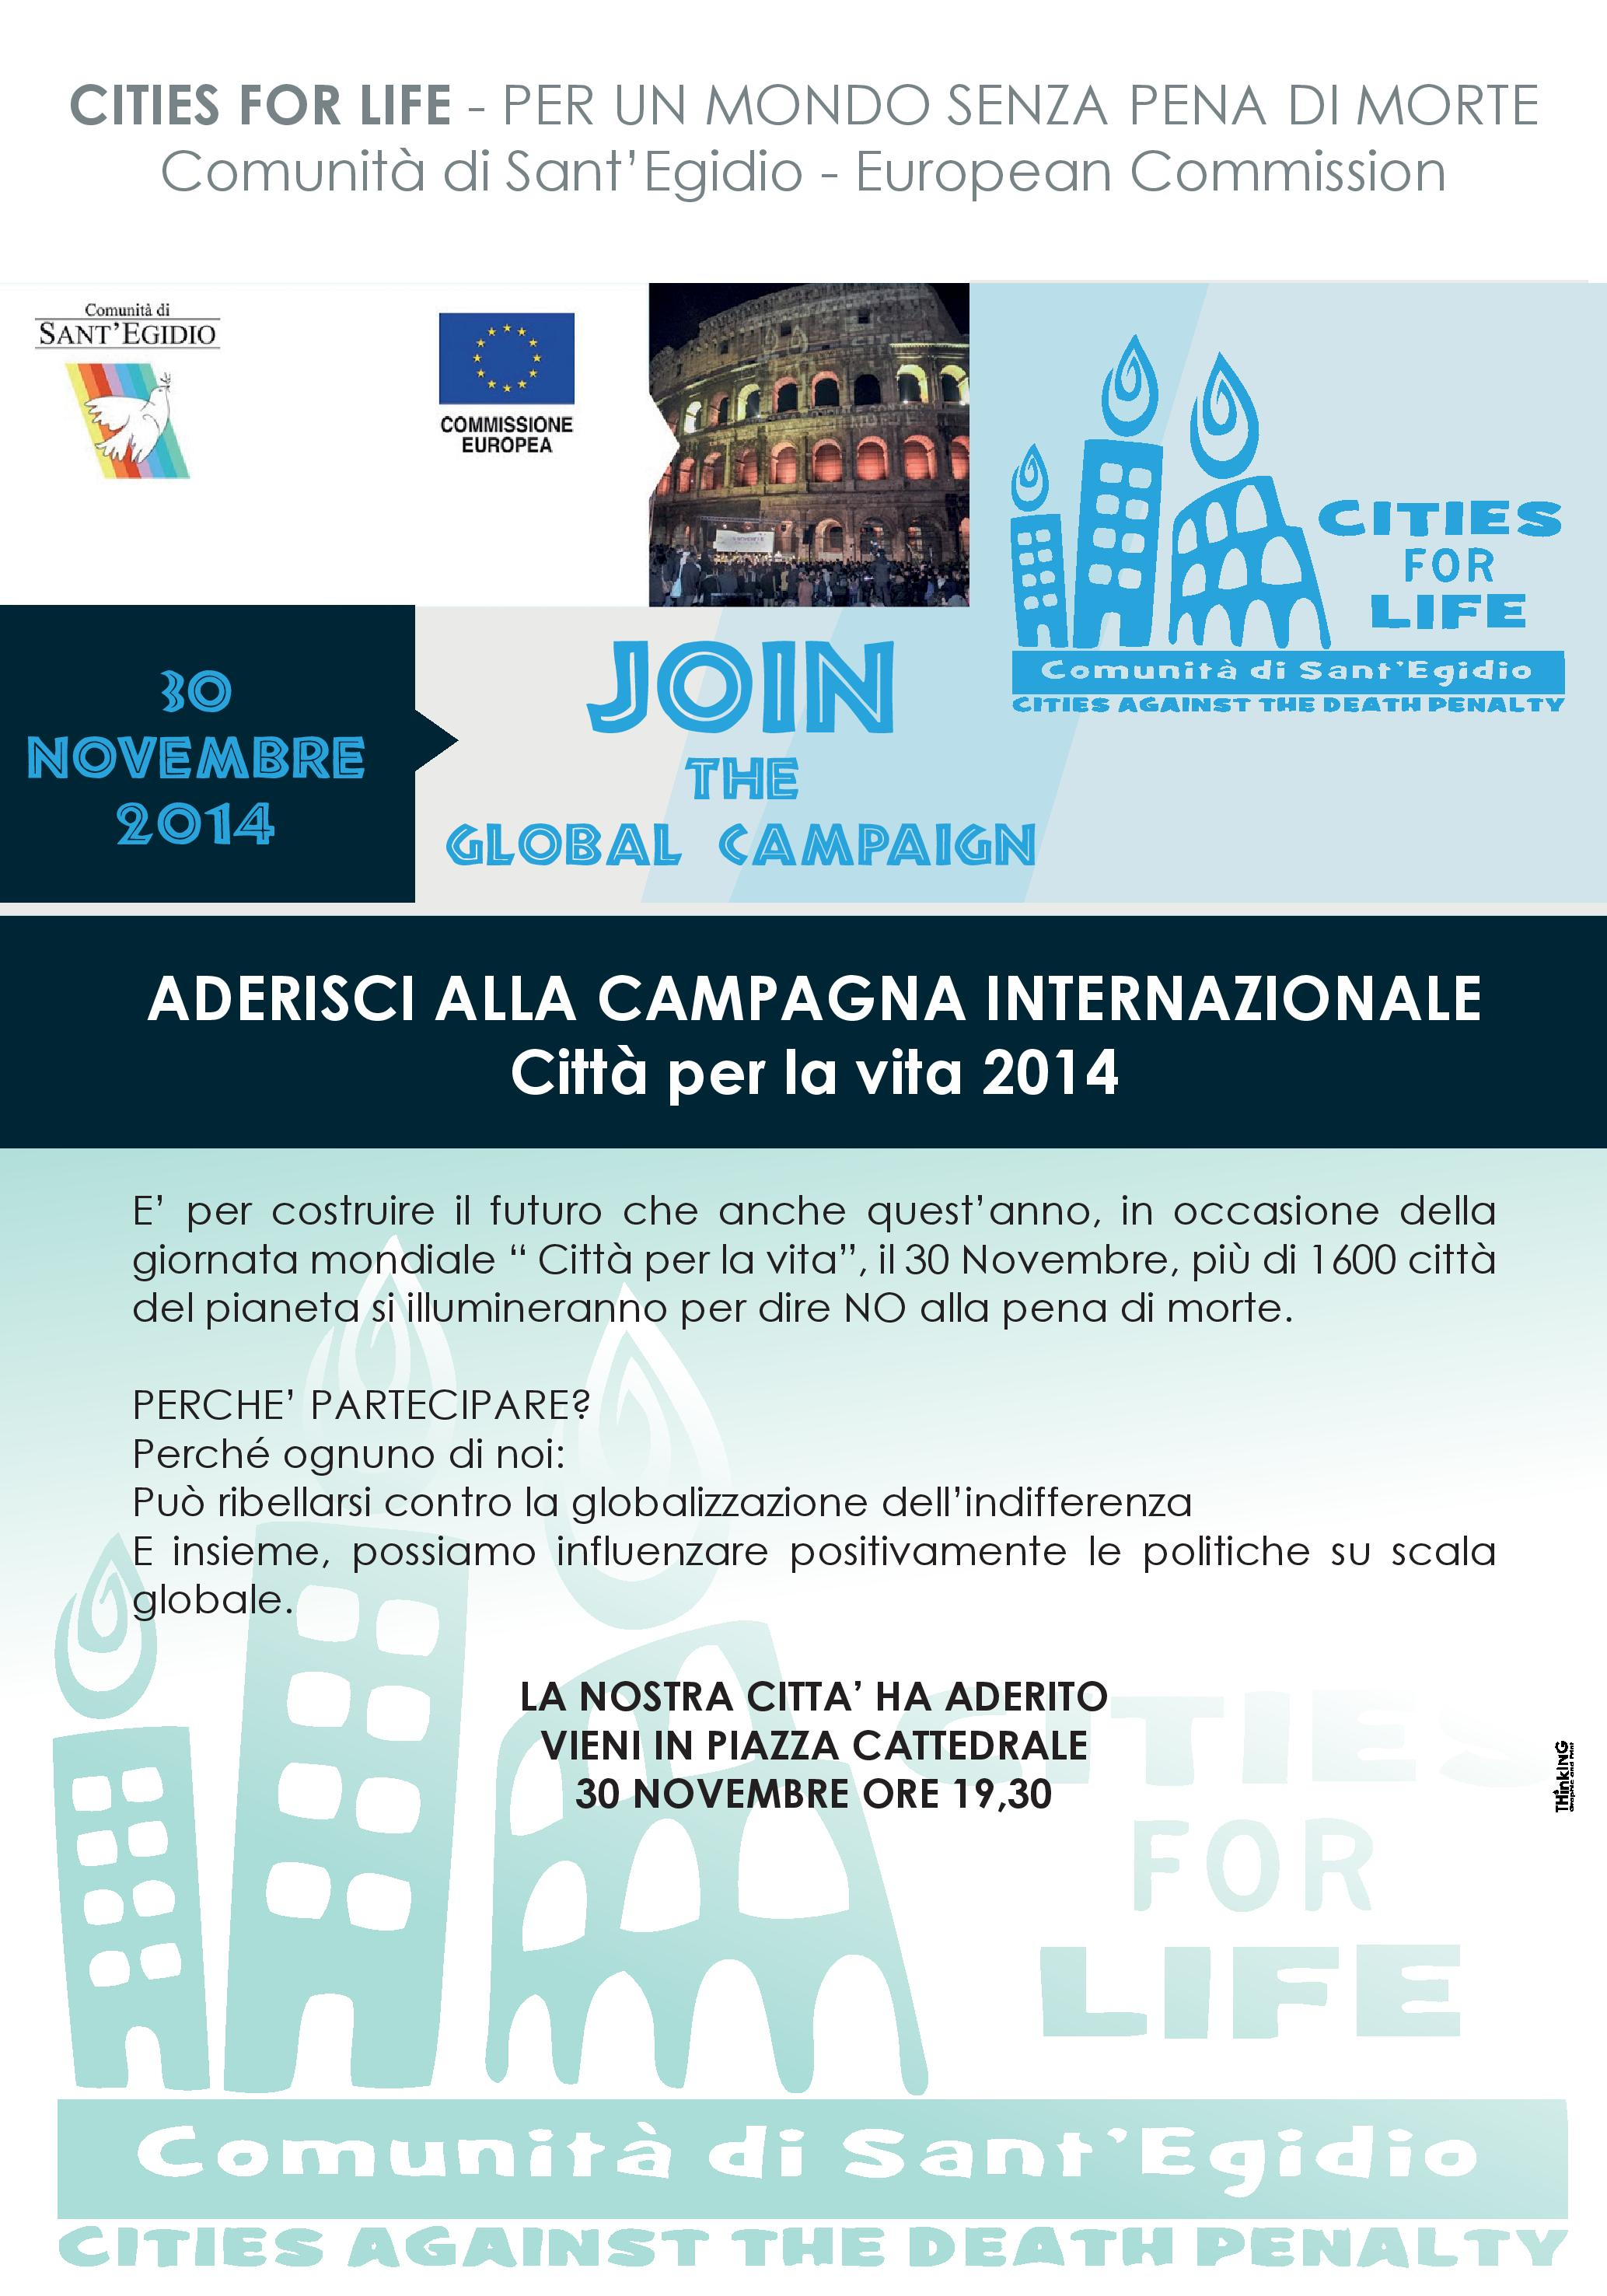 CITIES FOR LIFE - TROIA